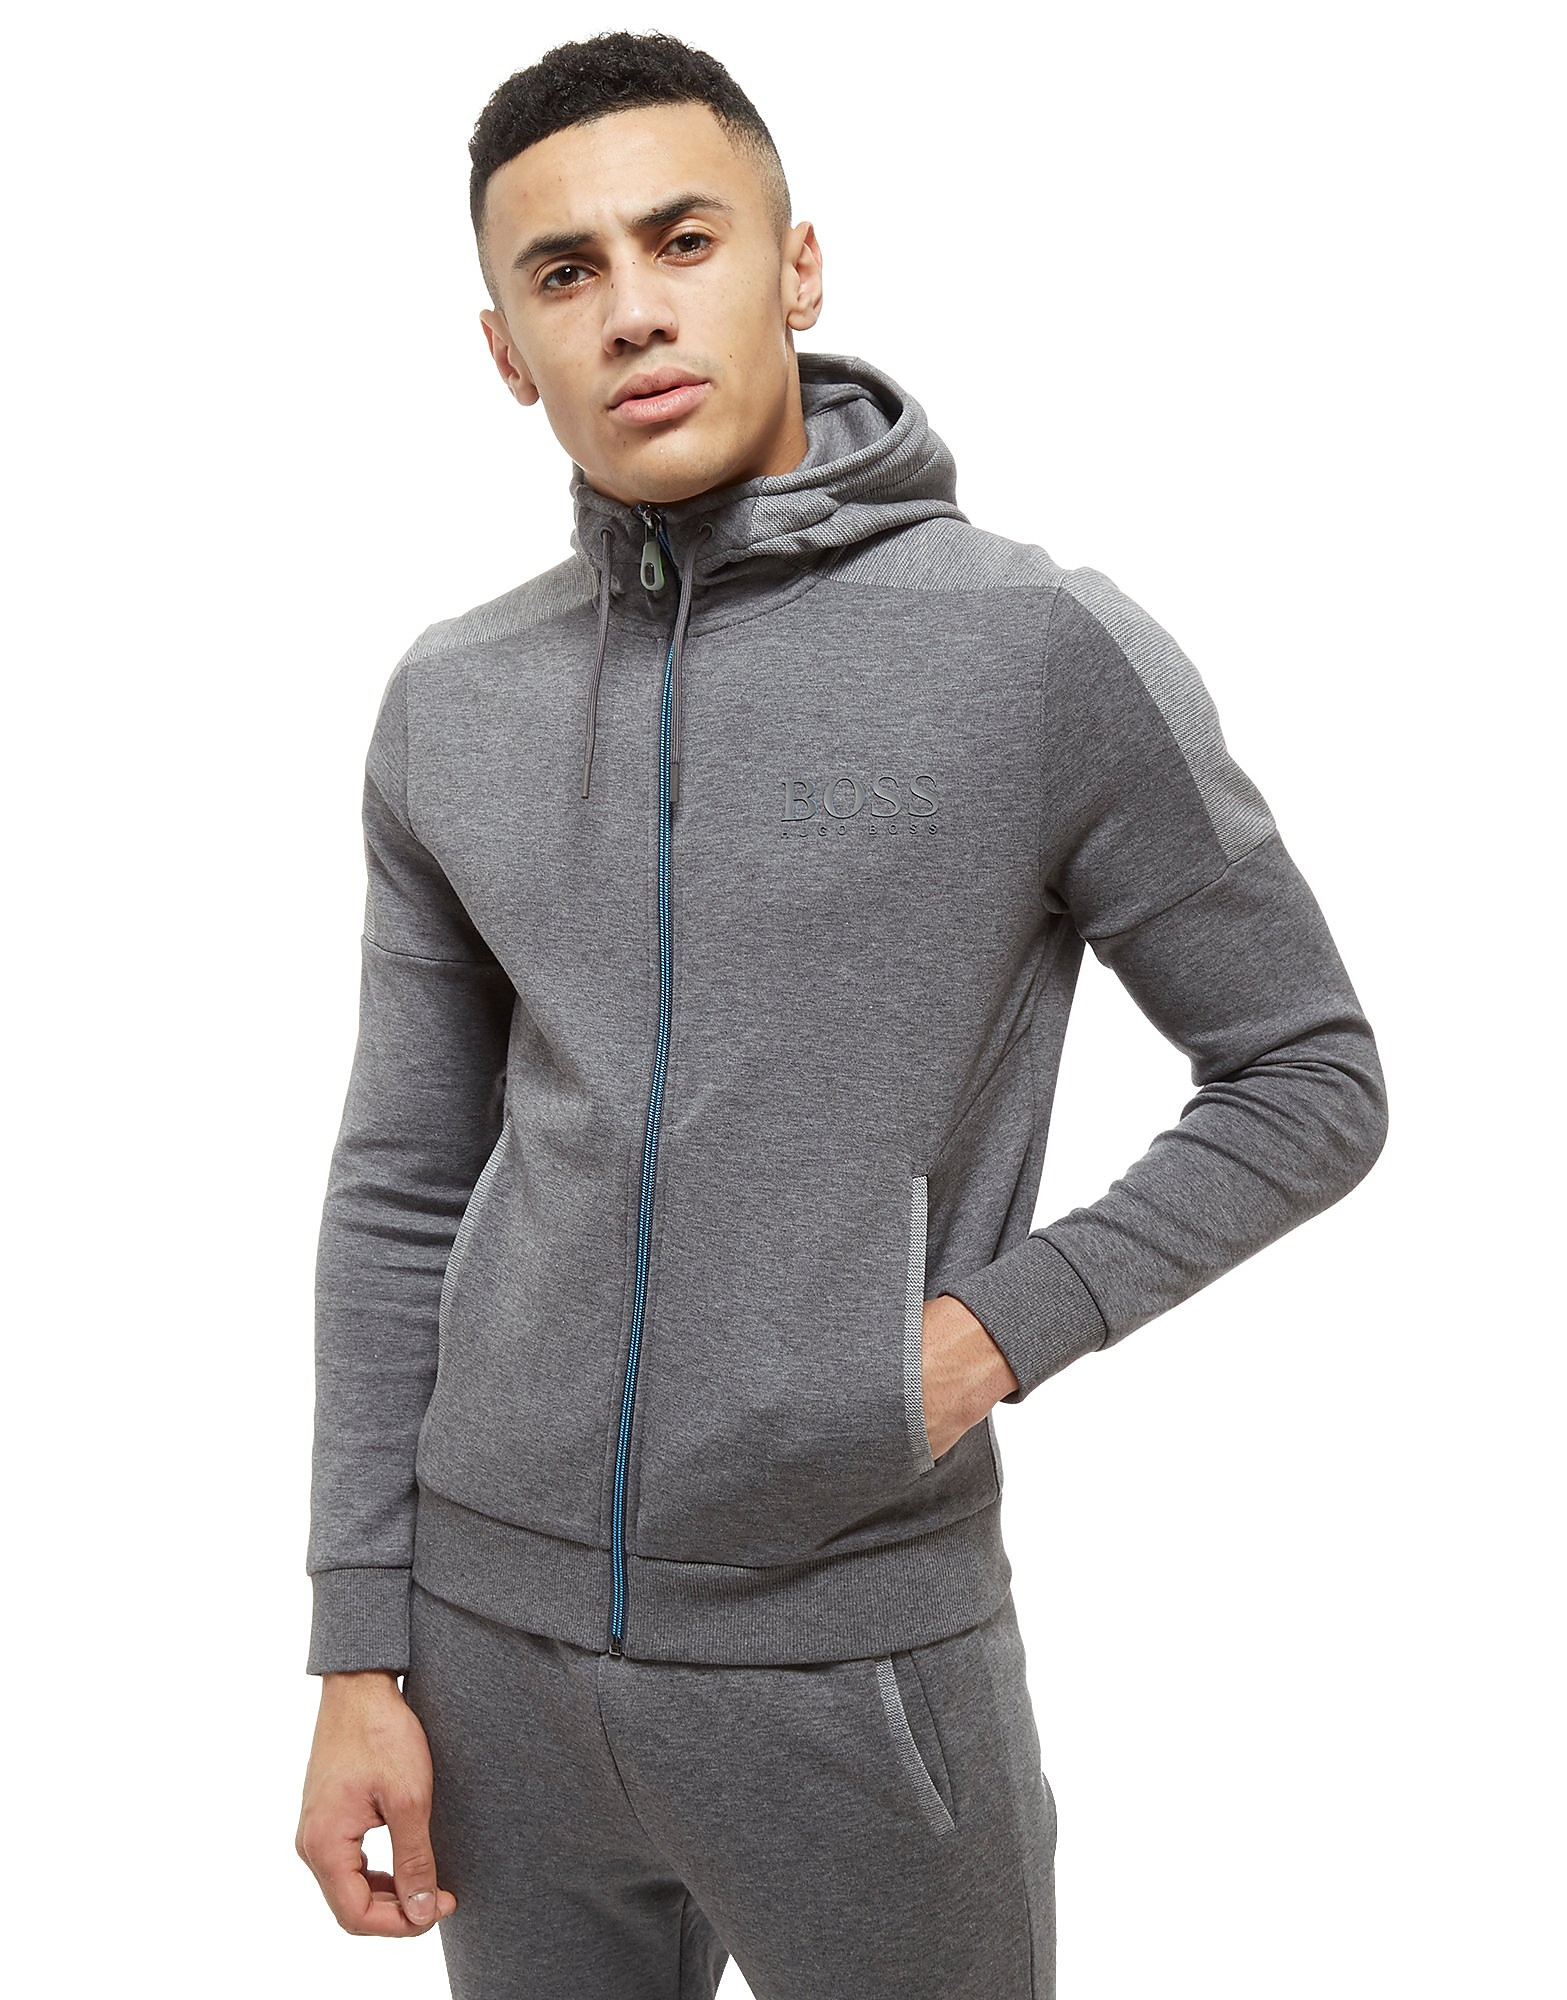 BOSS Green Saggy Zip Through Hoodie Heren - Grijs - Heren